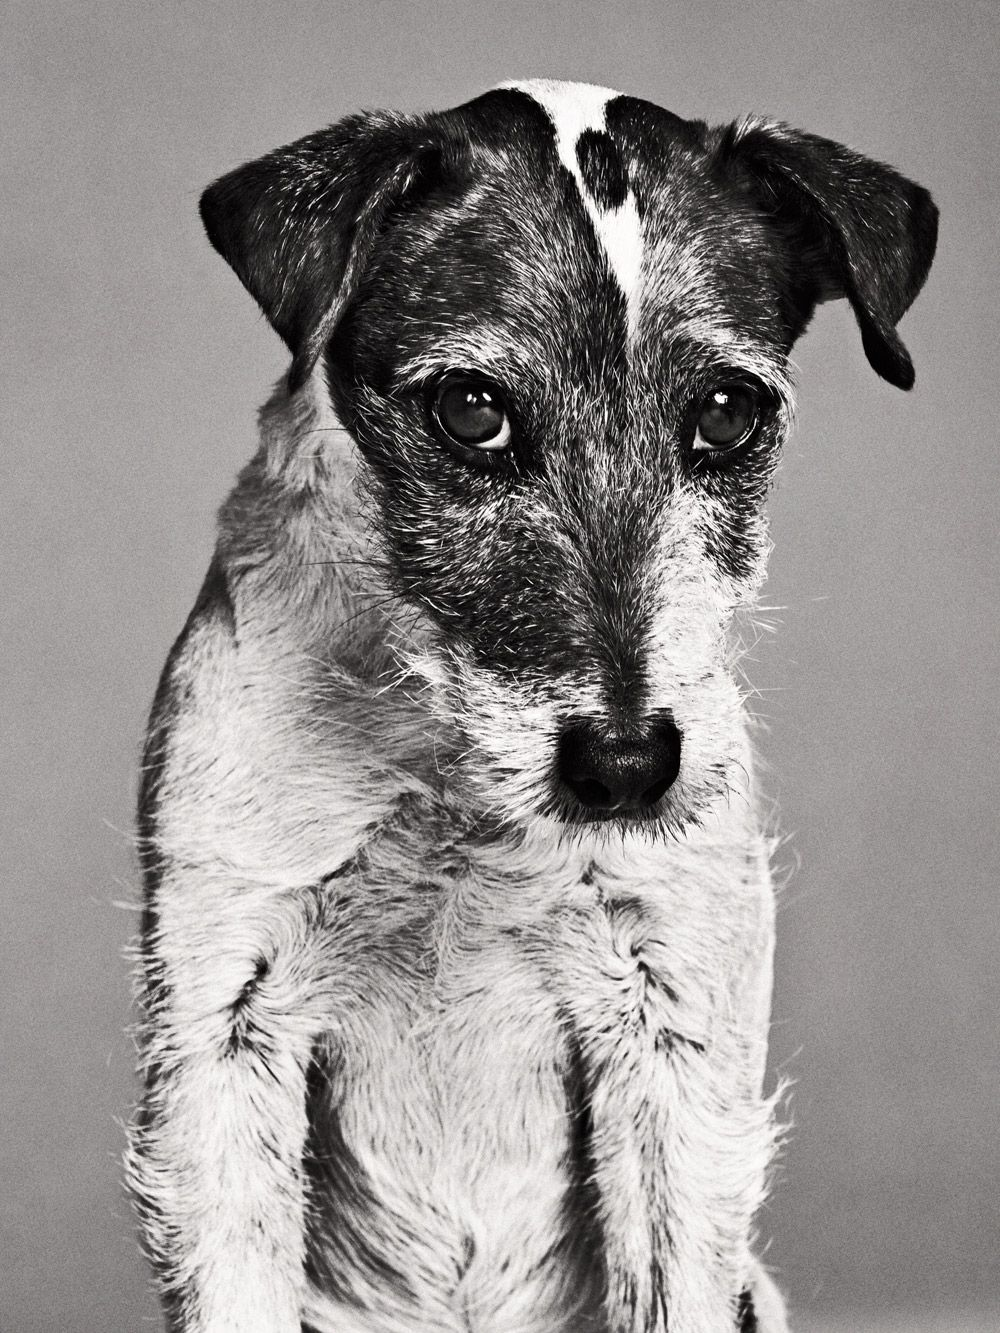 Uggie - a great [dog] performer